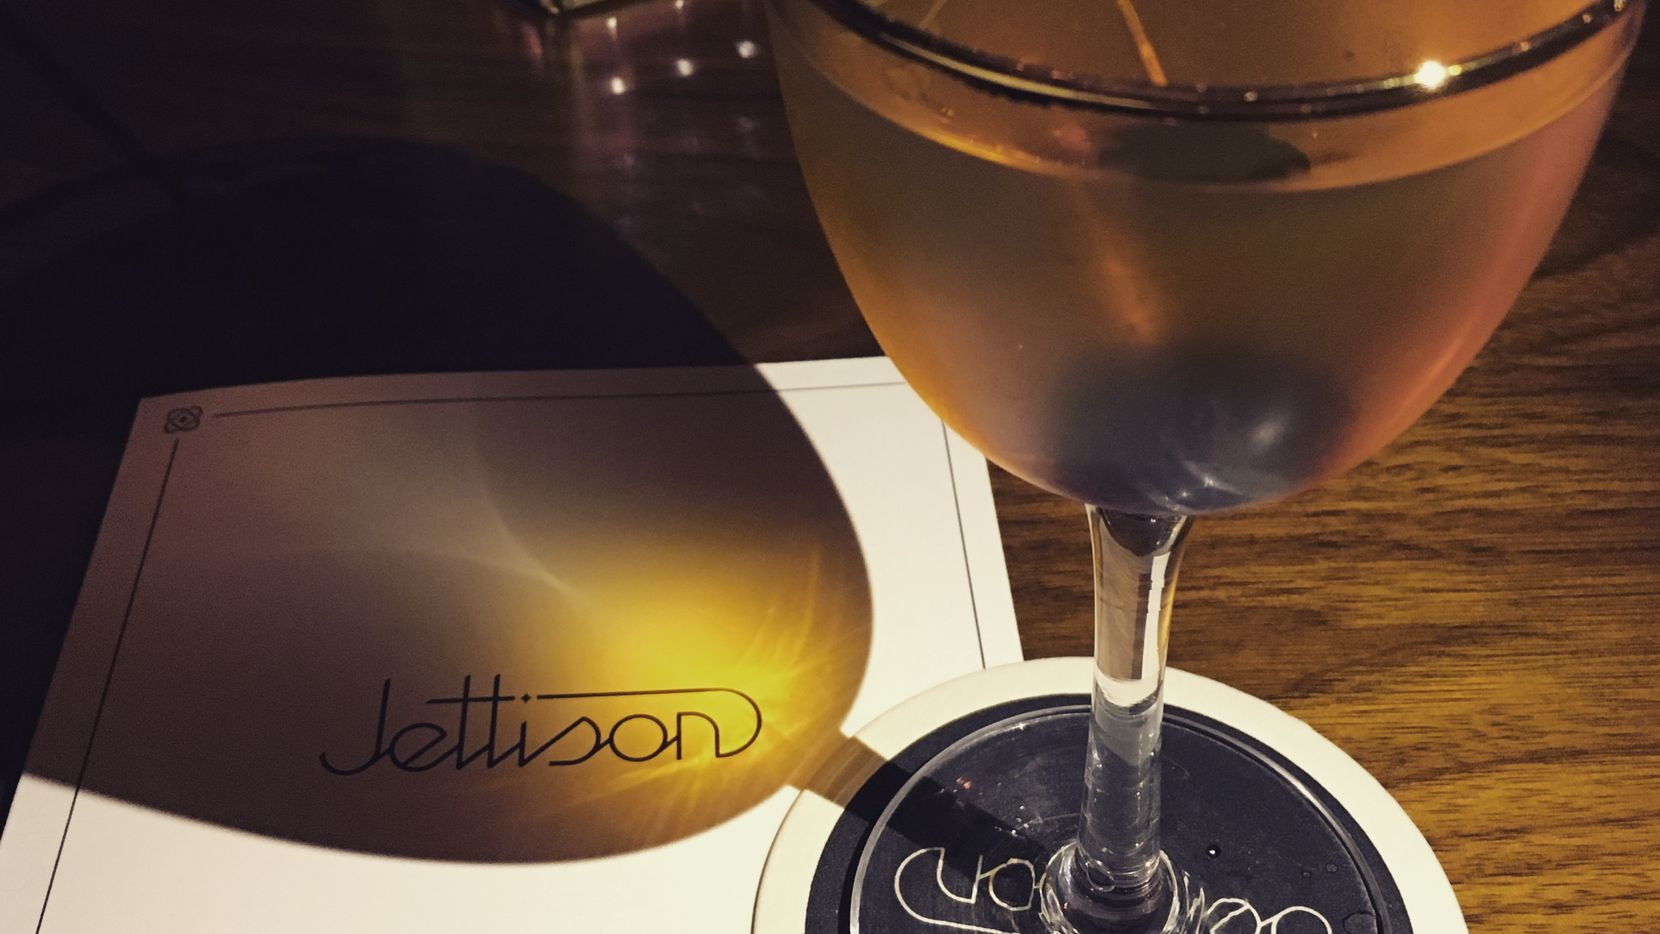 The Manhattan, TX, from Jettison. It's a mix of rye whiskey, single-malt whiskey, dry vermouth and bitters.